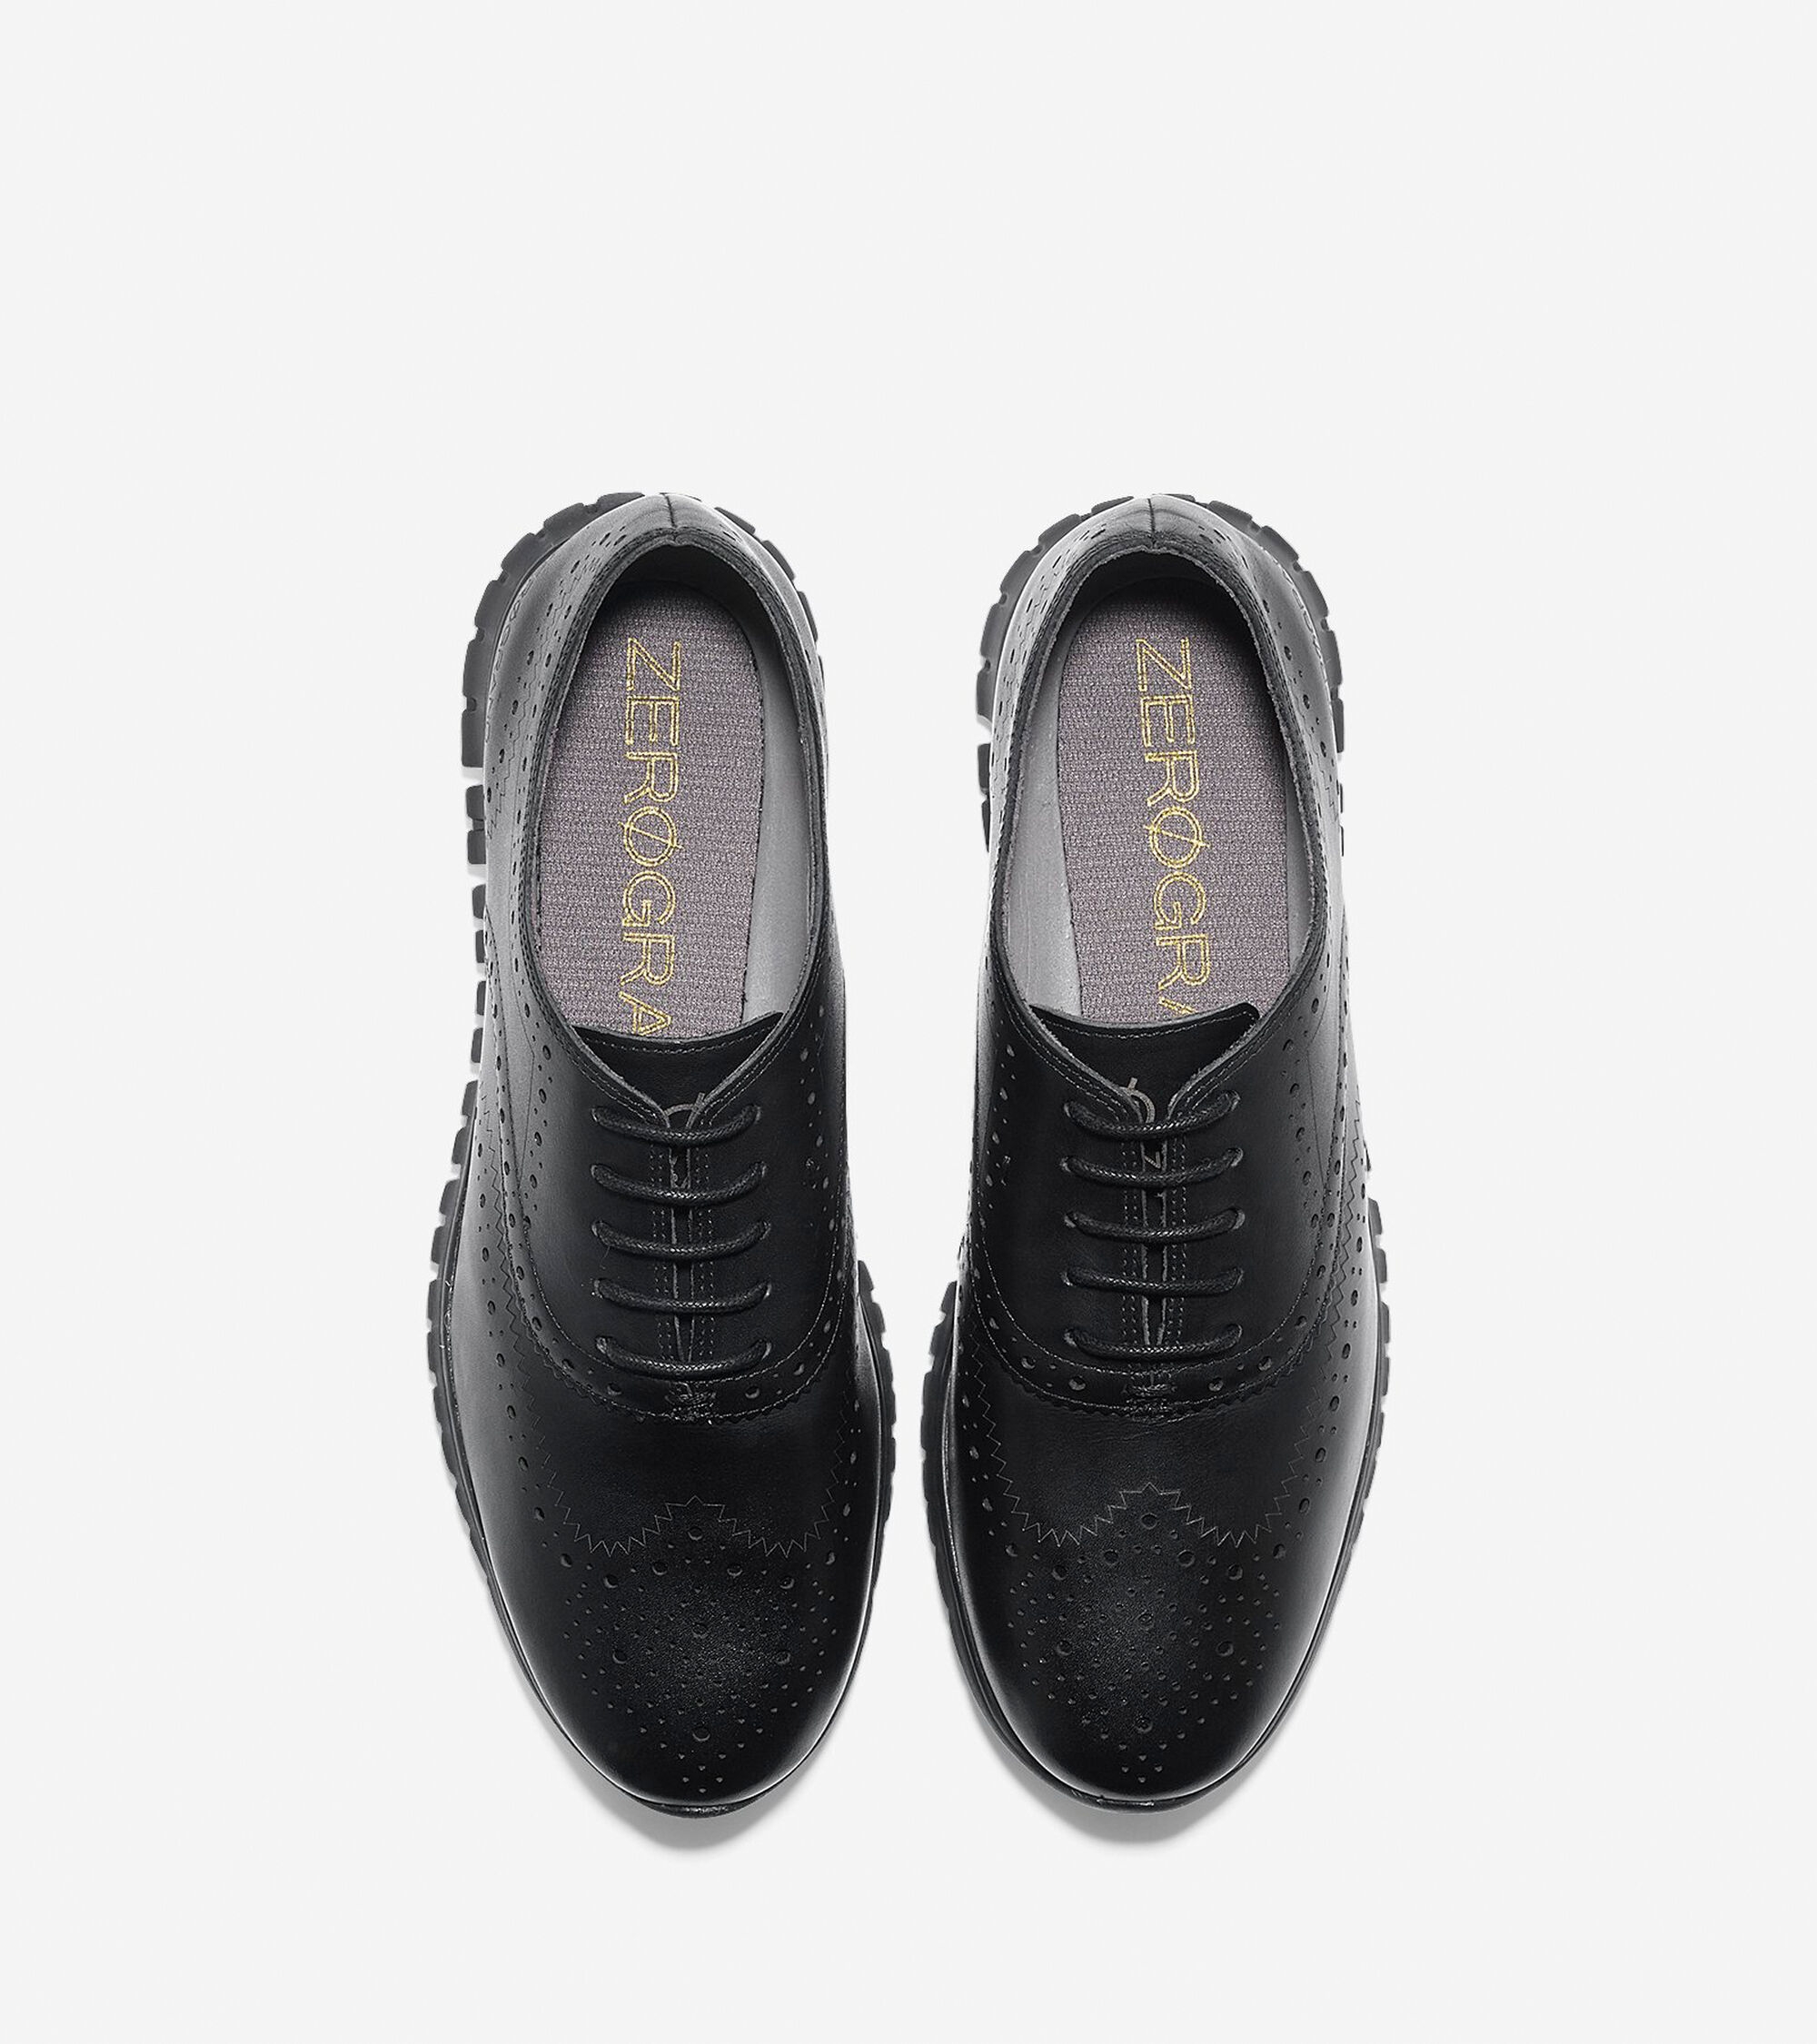 womens black leather wingtip shoes shoes footwear